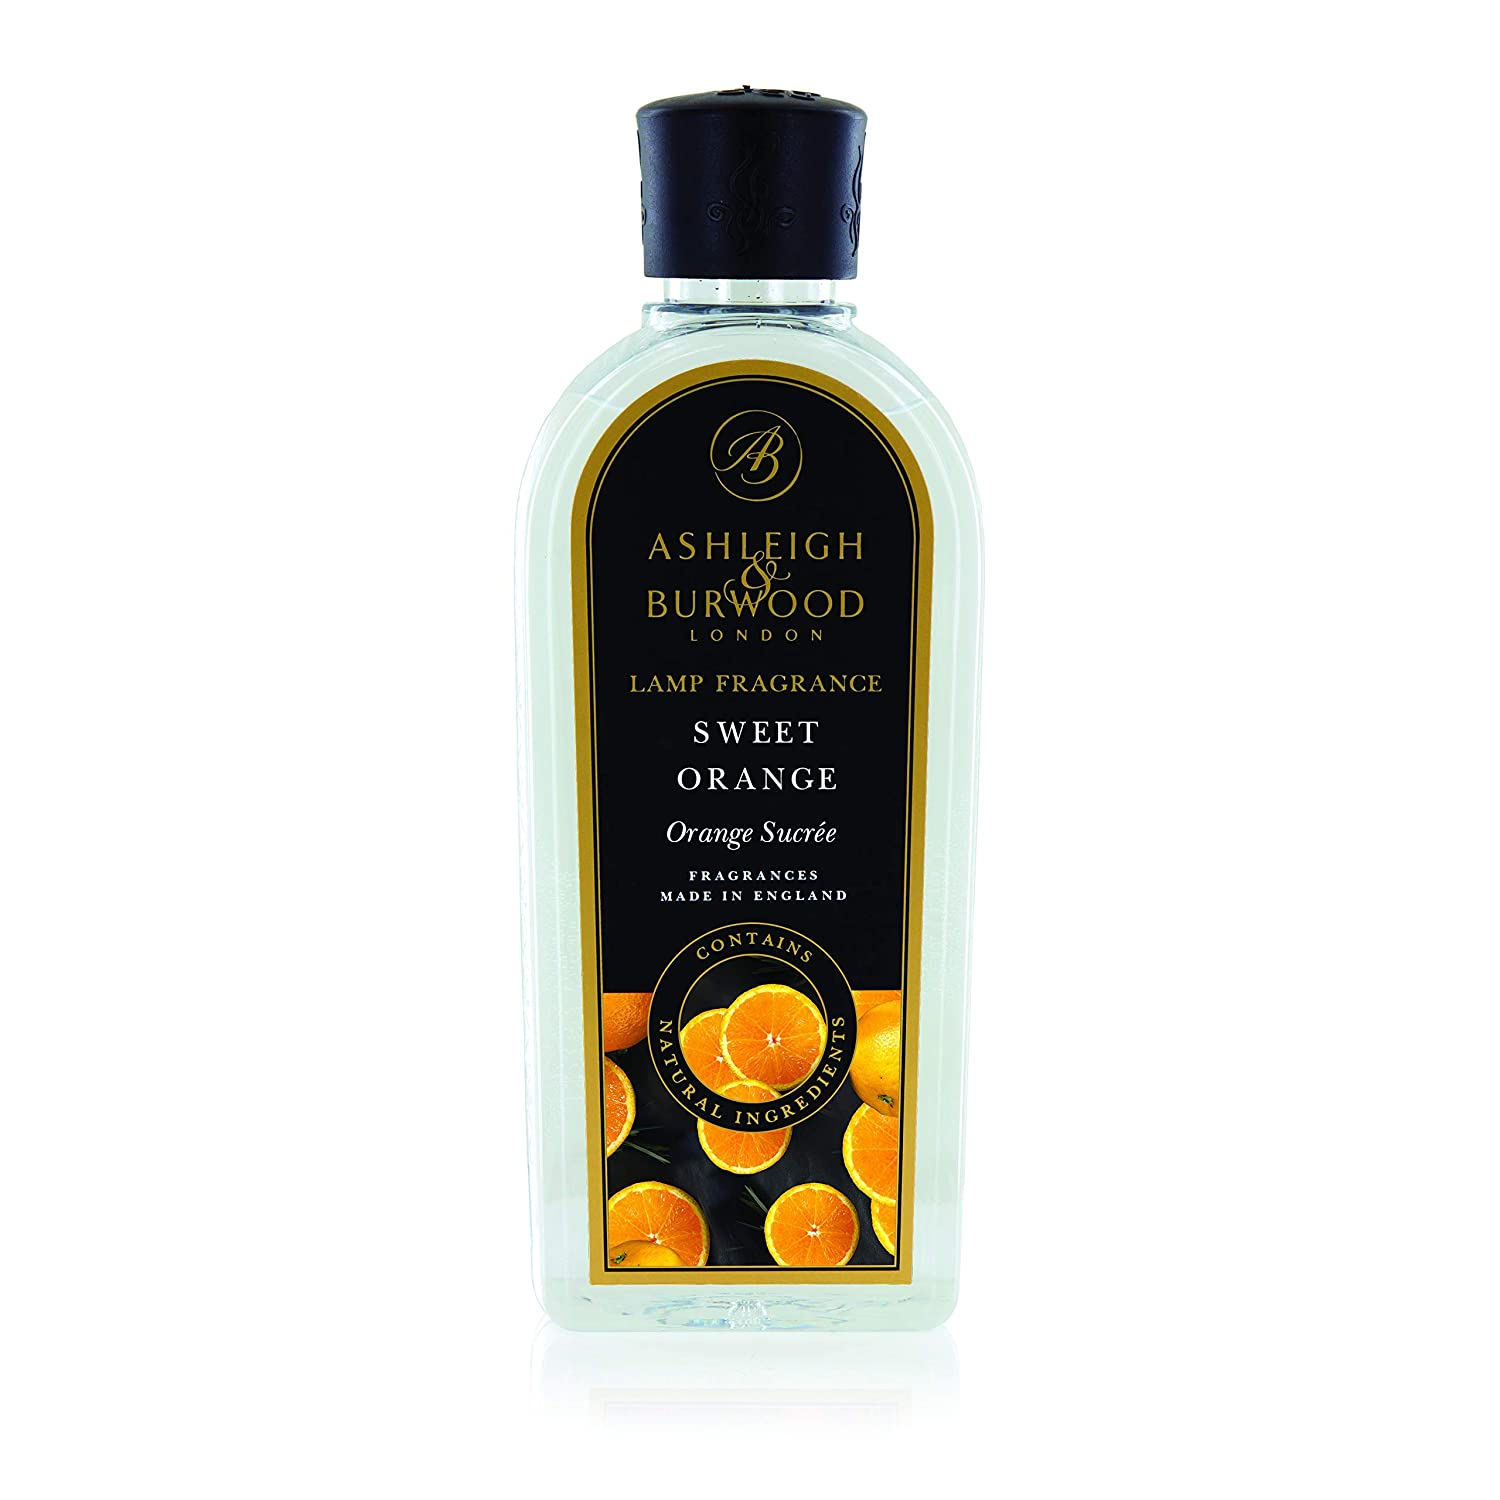 Ashleigh & Burwood Fragrance oil 250ml Sweet Orange Ashleigh Burwood PFL913